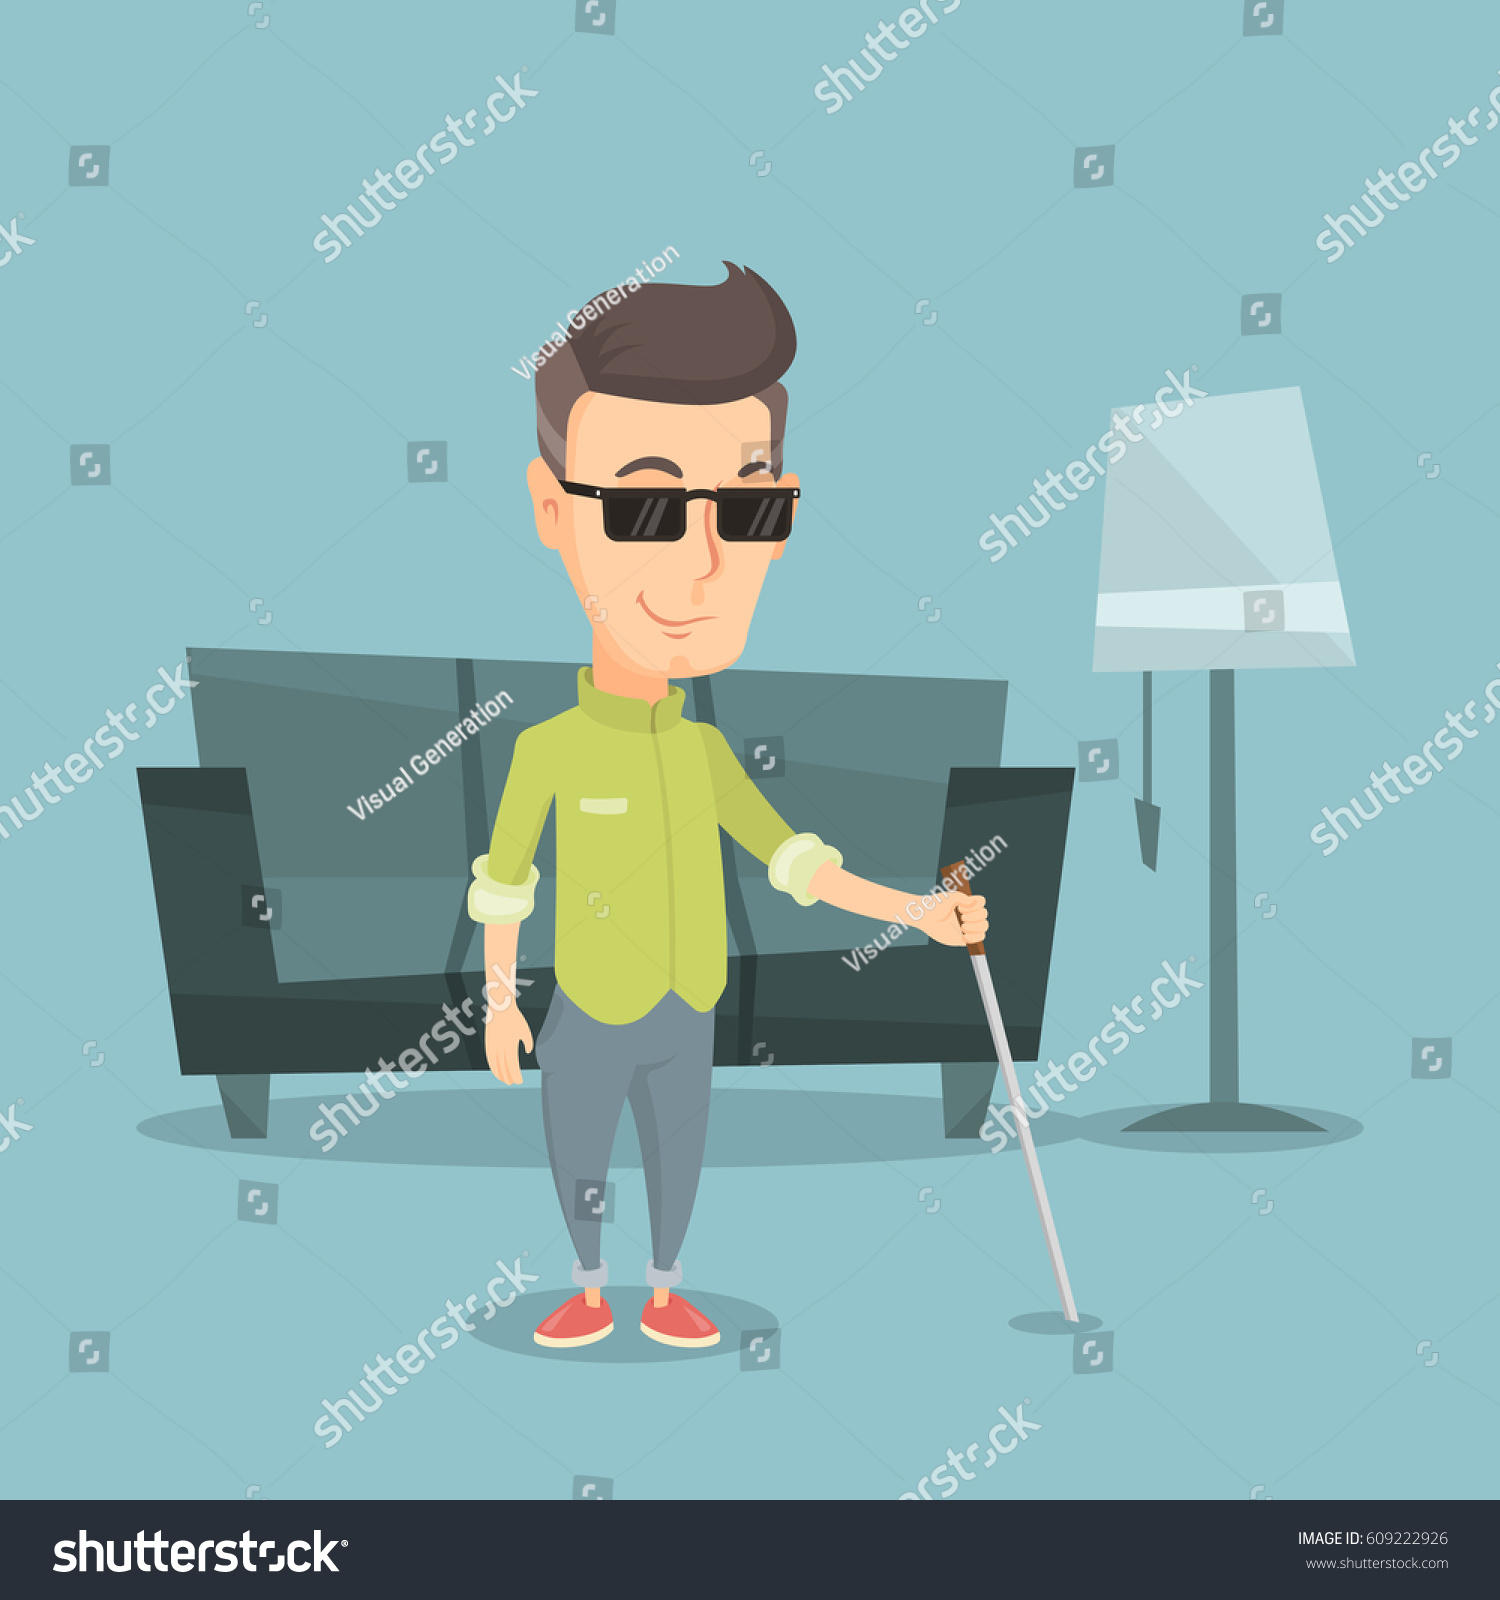 caucasian blind man standing walking stick stock vector royalty